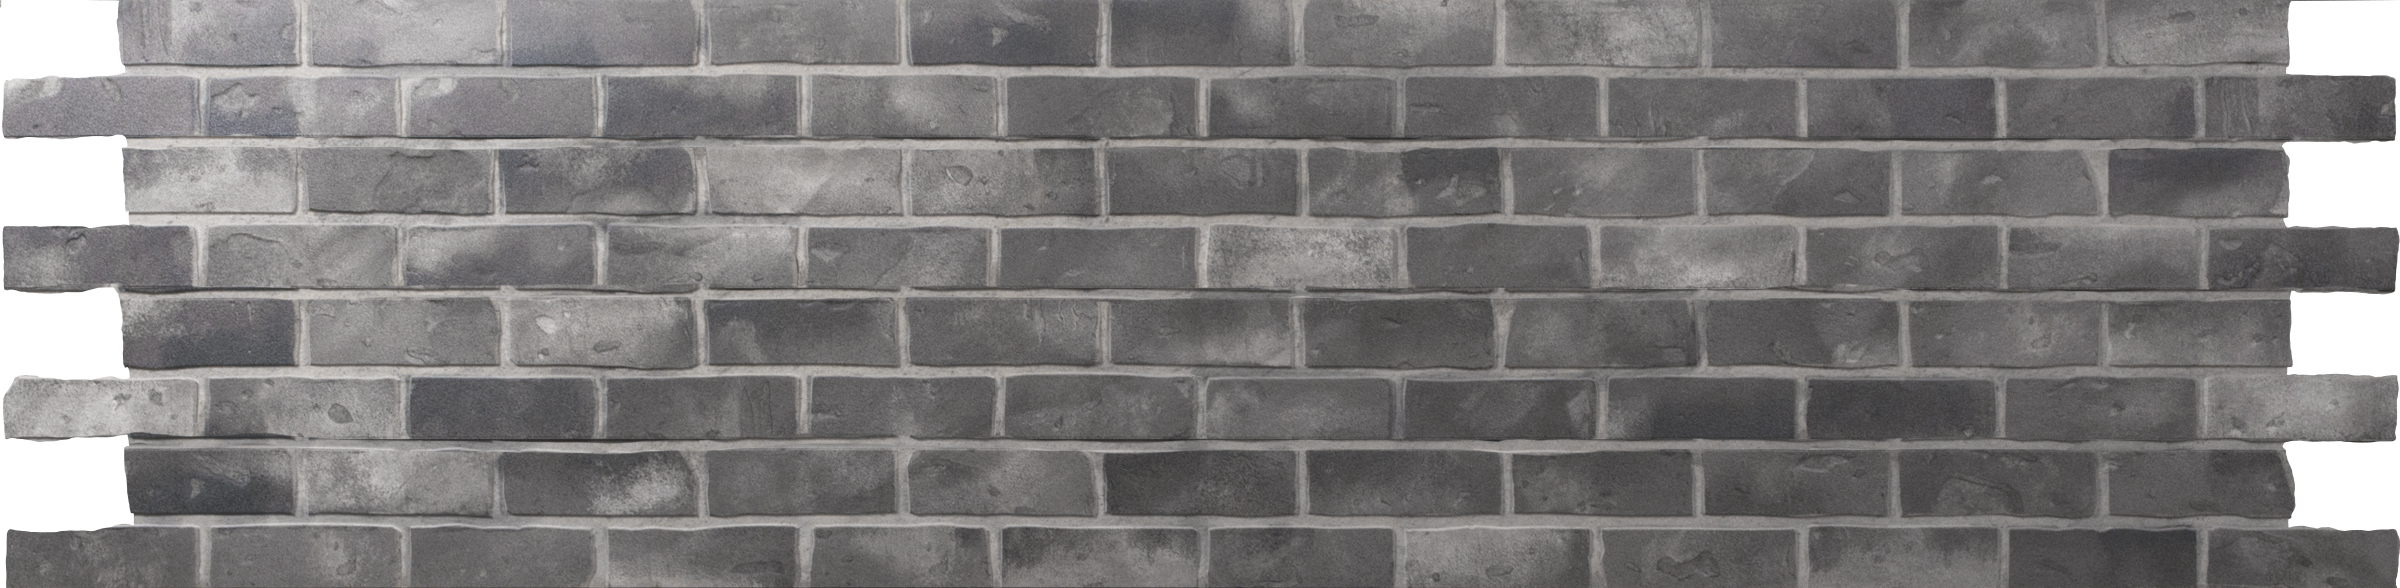 Brick grey full  walltrex copy.jpg